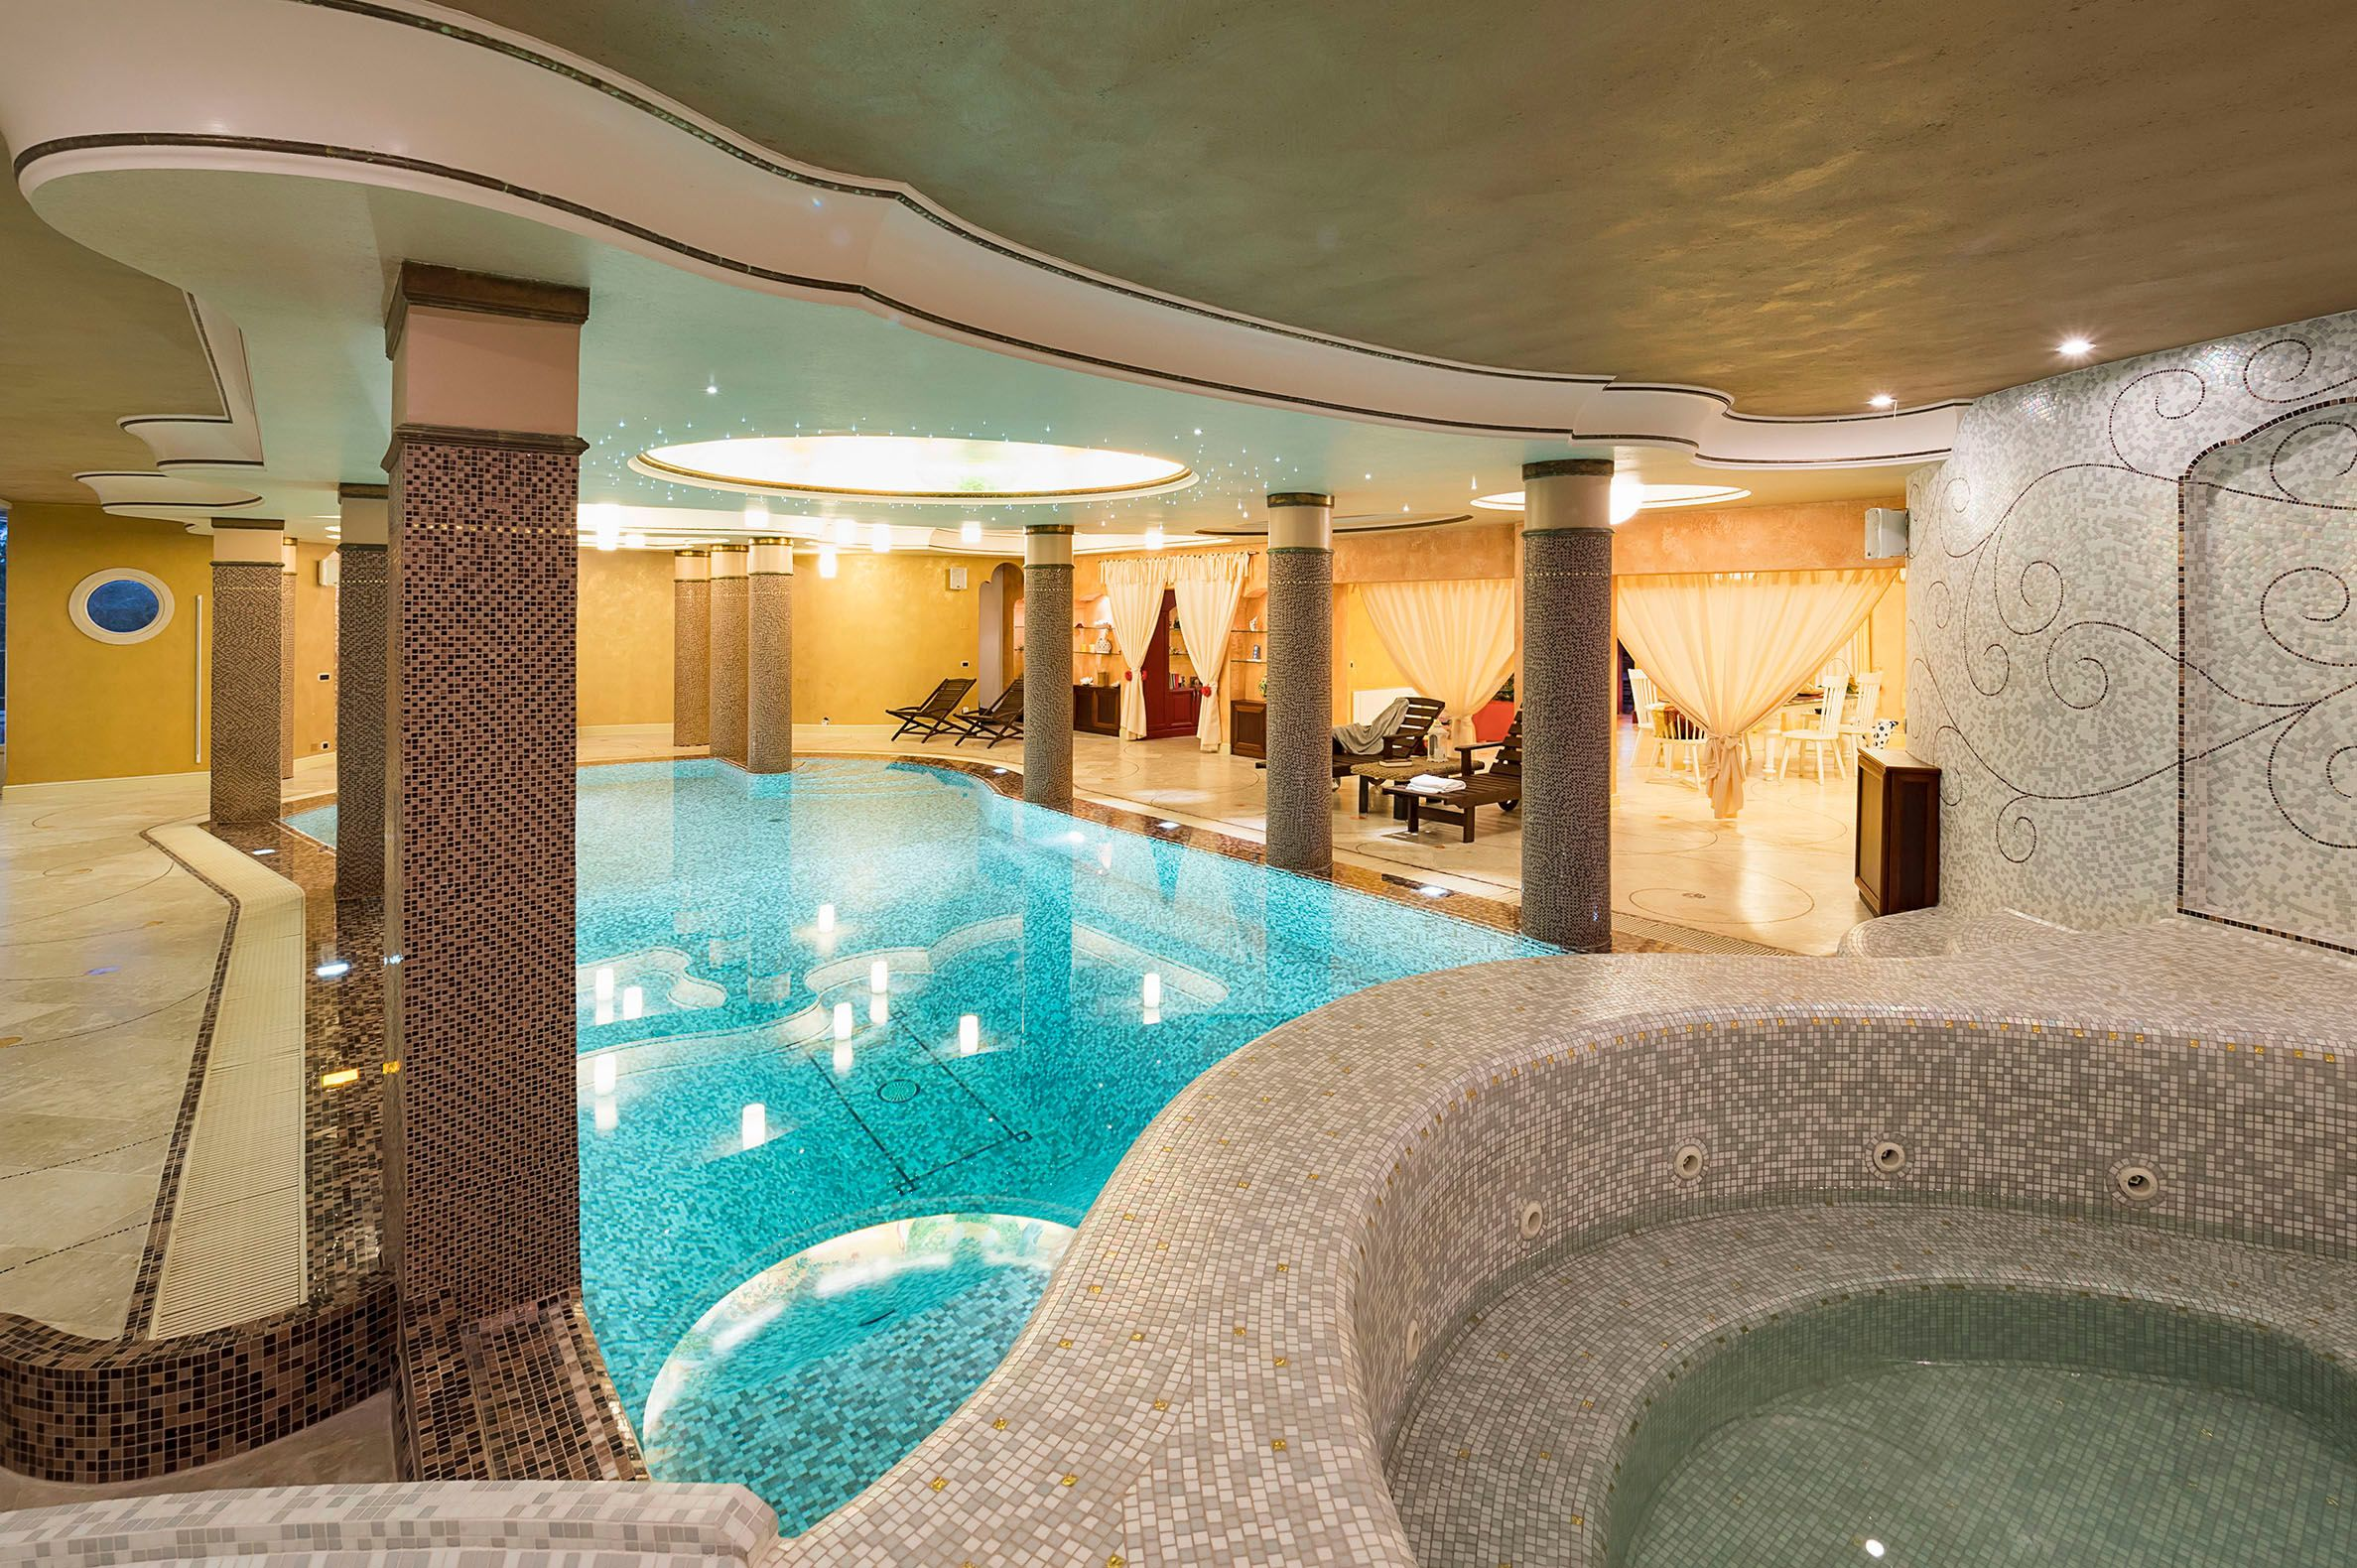 Villa Drago Spa :